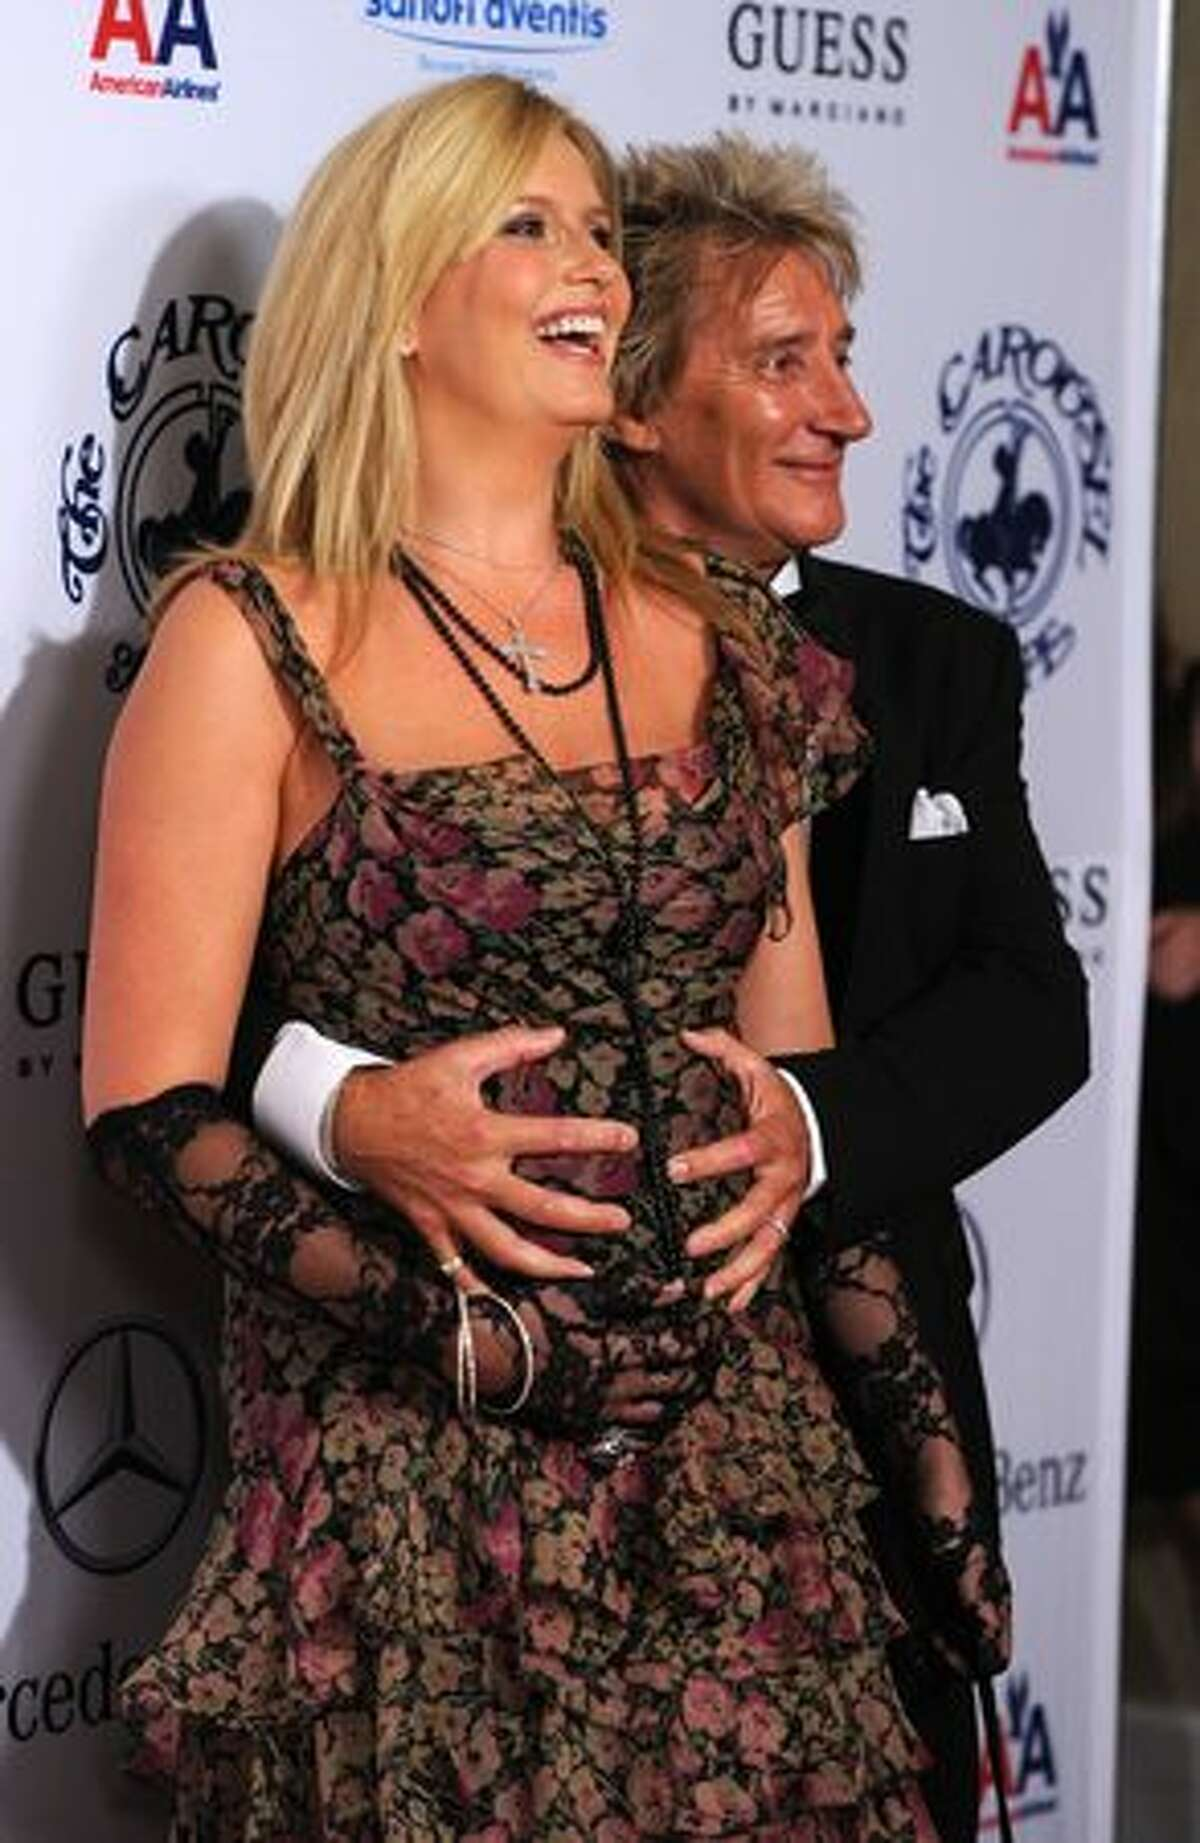 Singer Rod Stewart and wife Penny Lancaster arrive at the 32nd Anniversary Carousel Of Hope Gala at the Beverly Hilton Hotel in Beverly Hills, California.